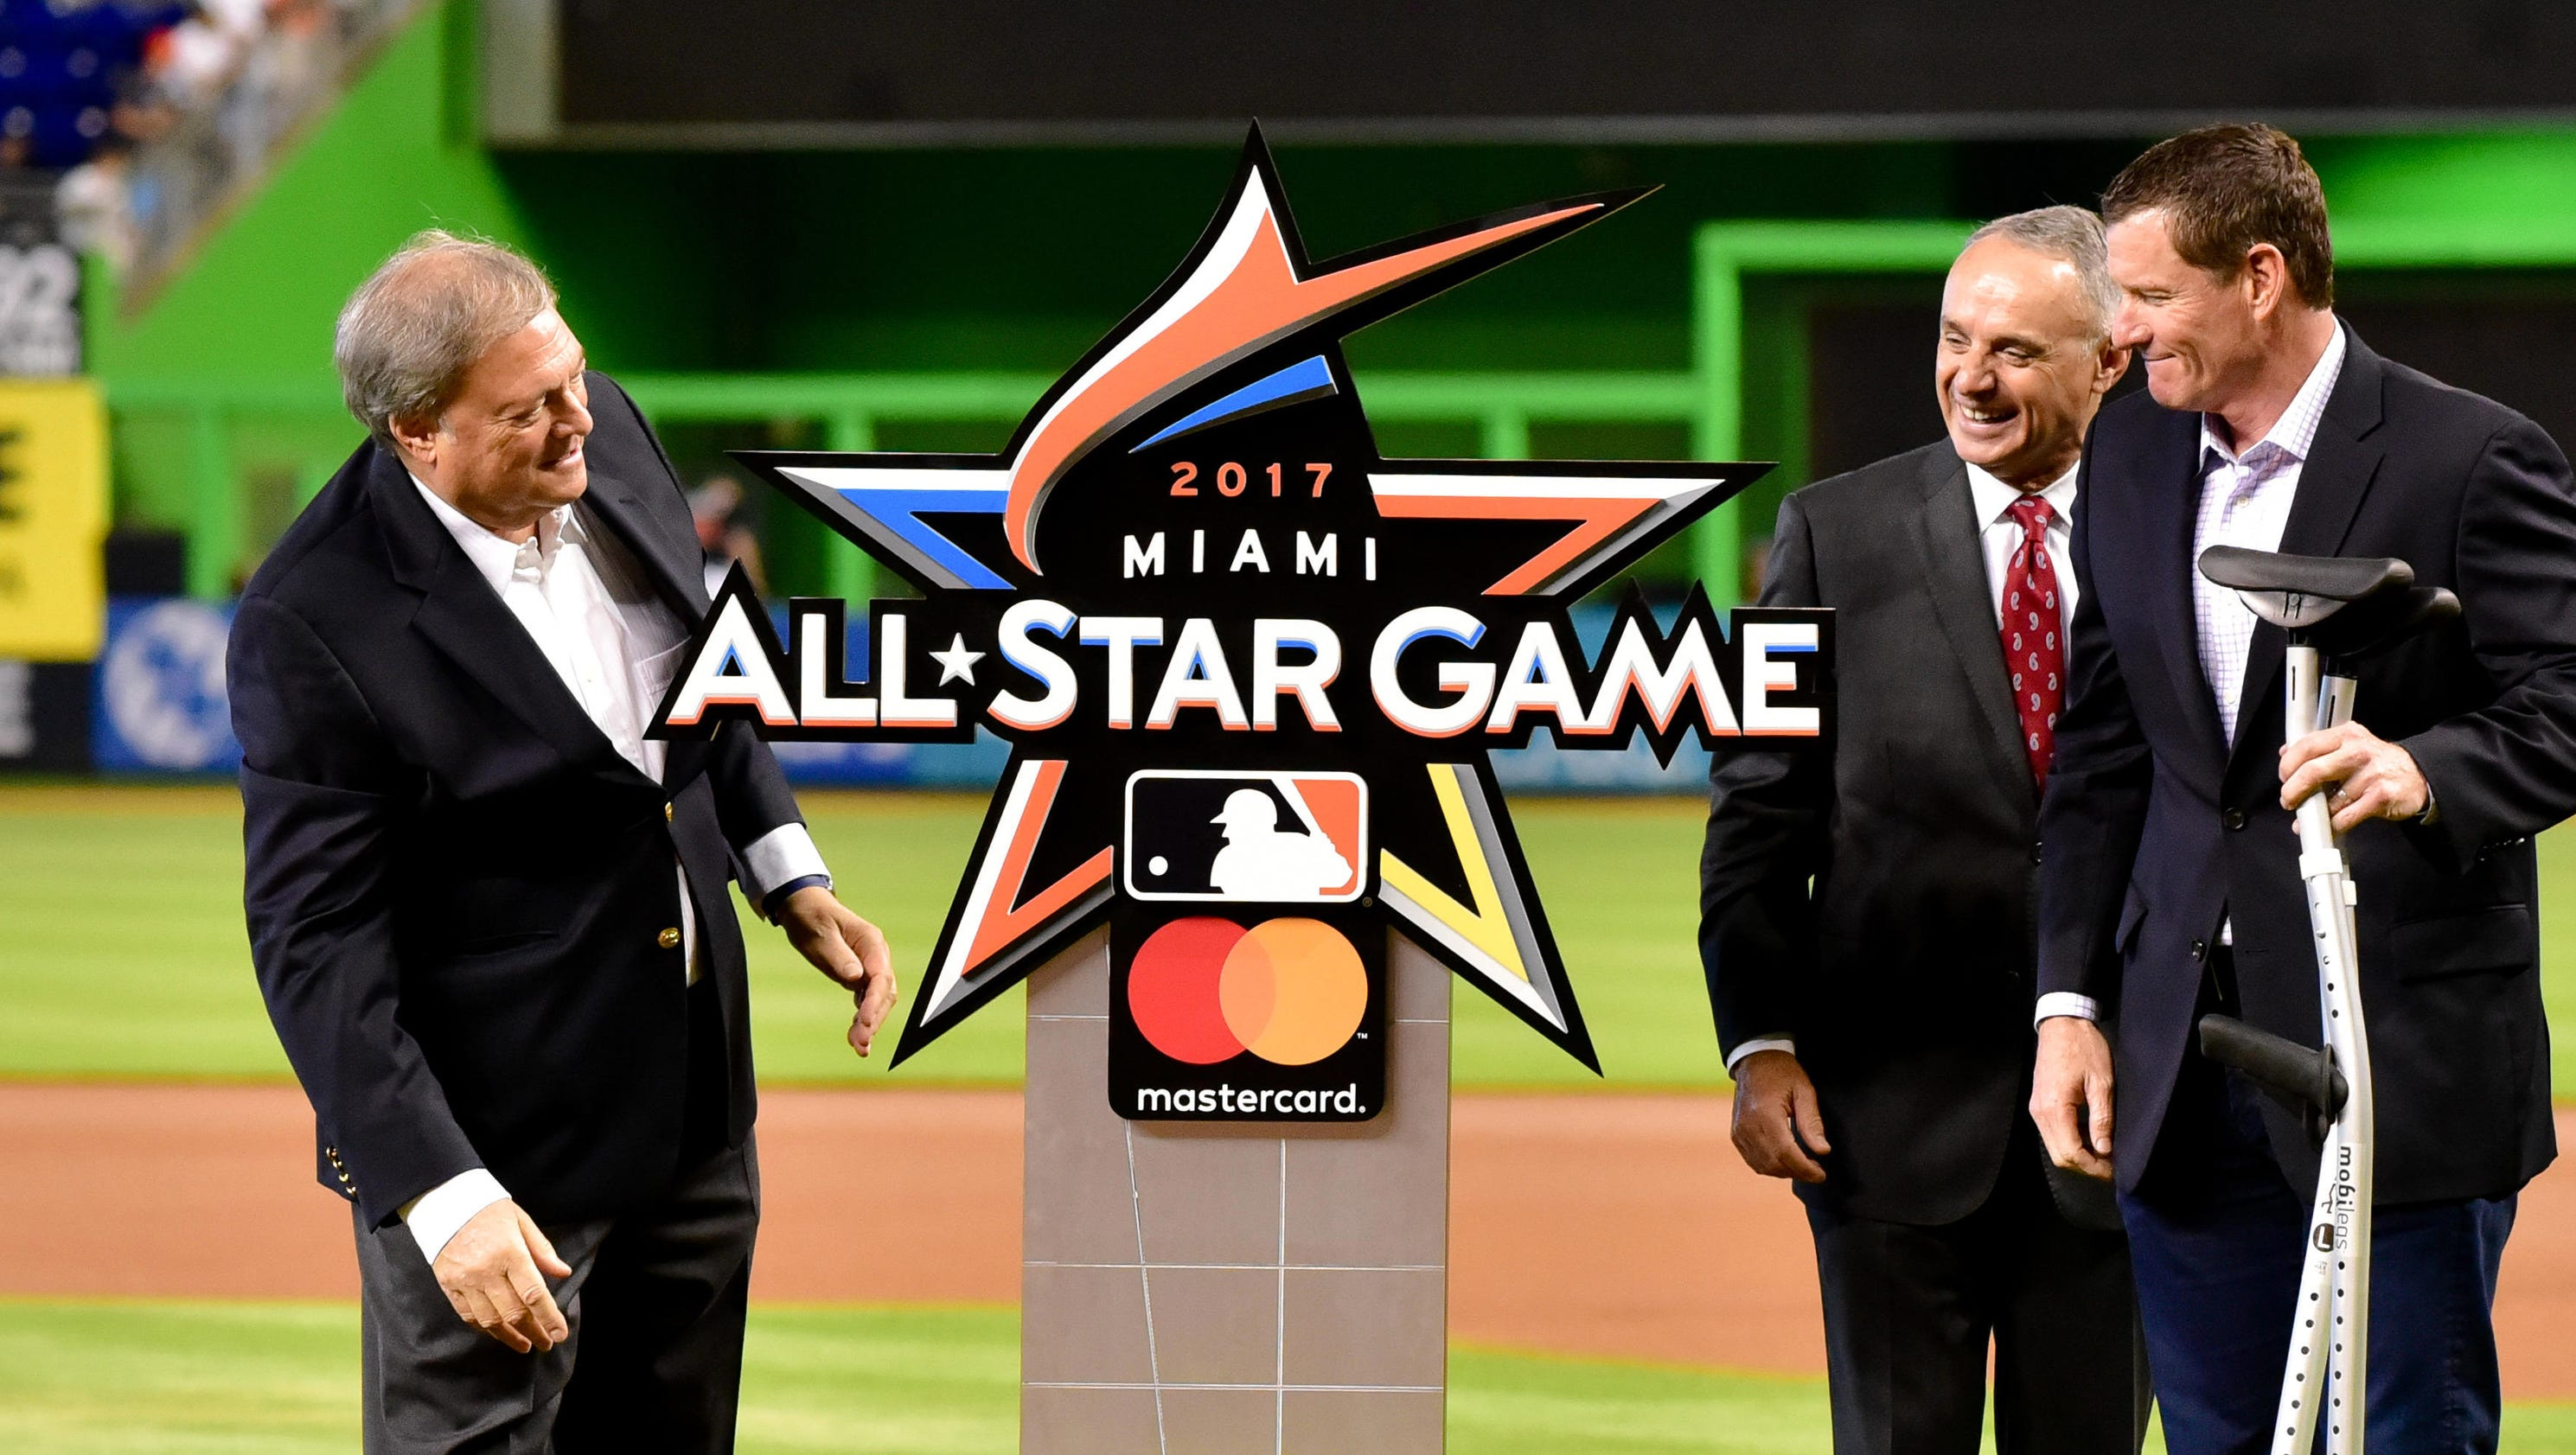 Major change coming to MLB All-Star Game